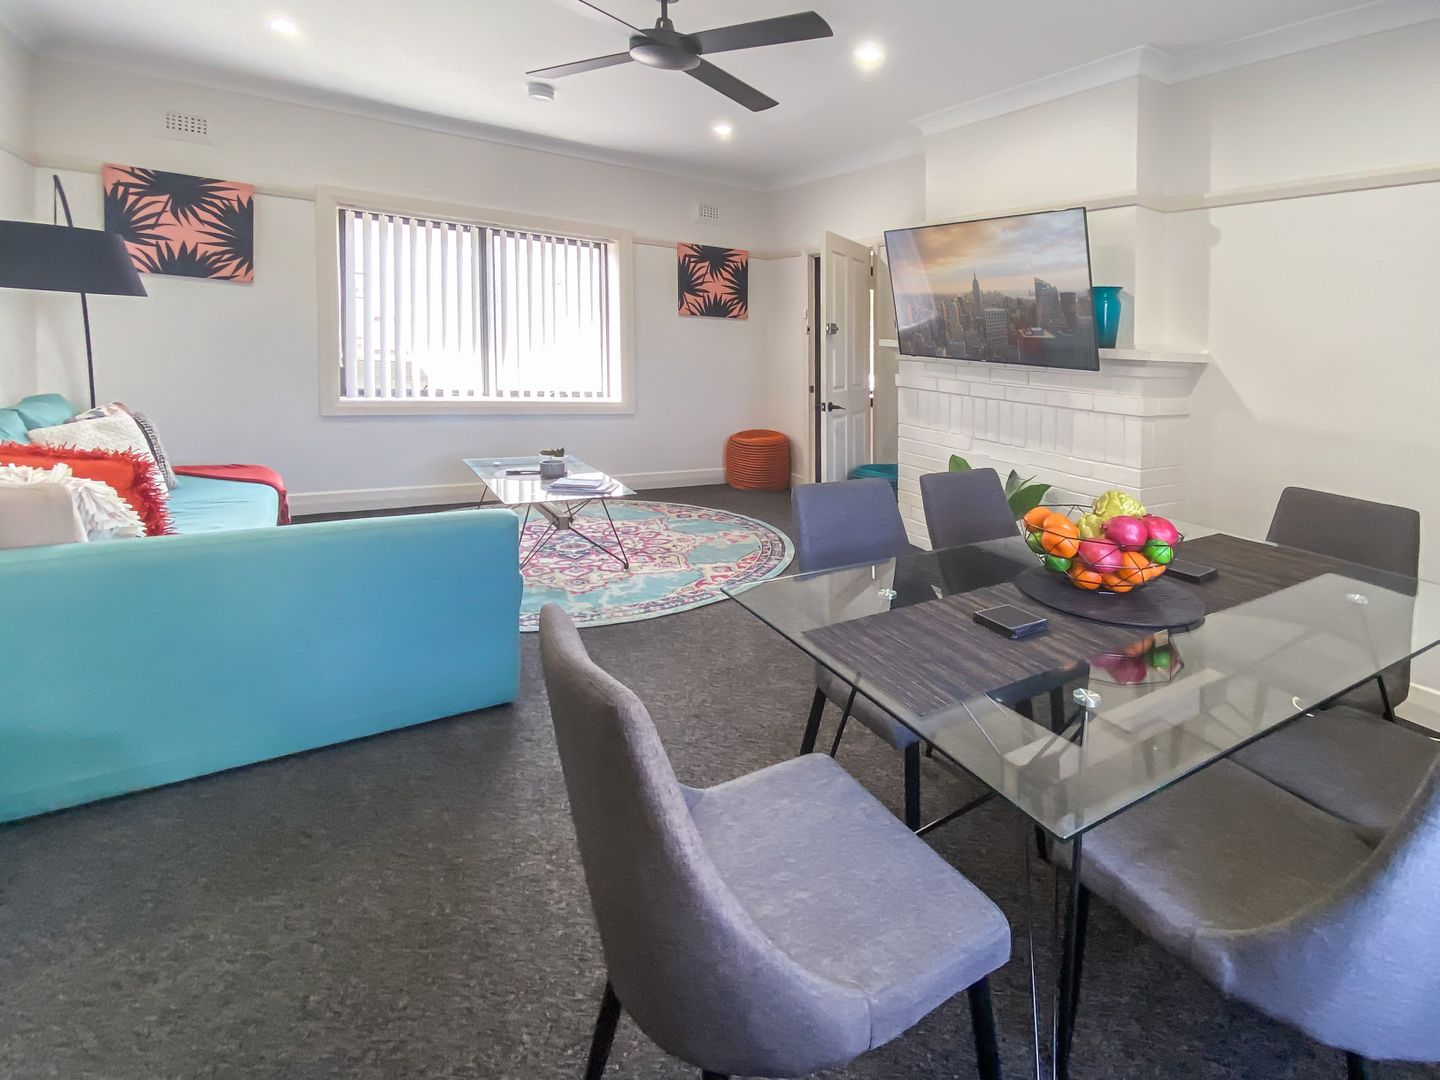 4/93 Wolfe Street, The Hill NSW 2300, Image 2